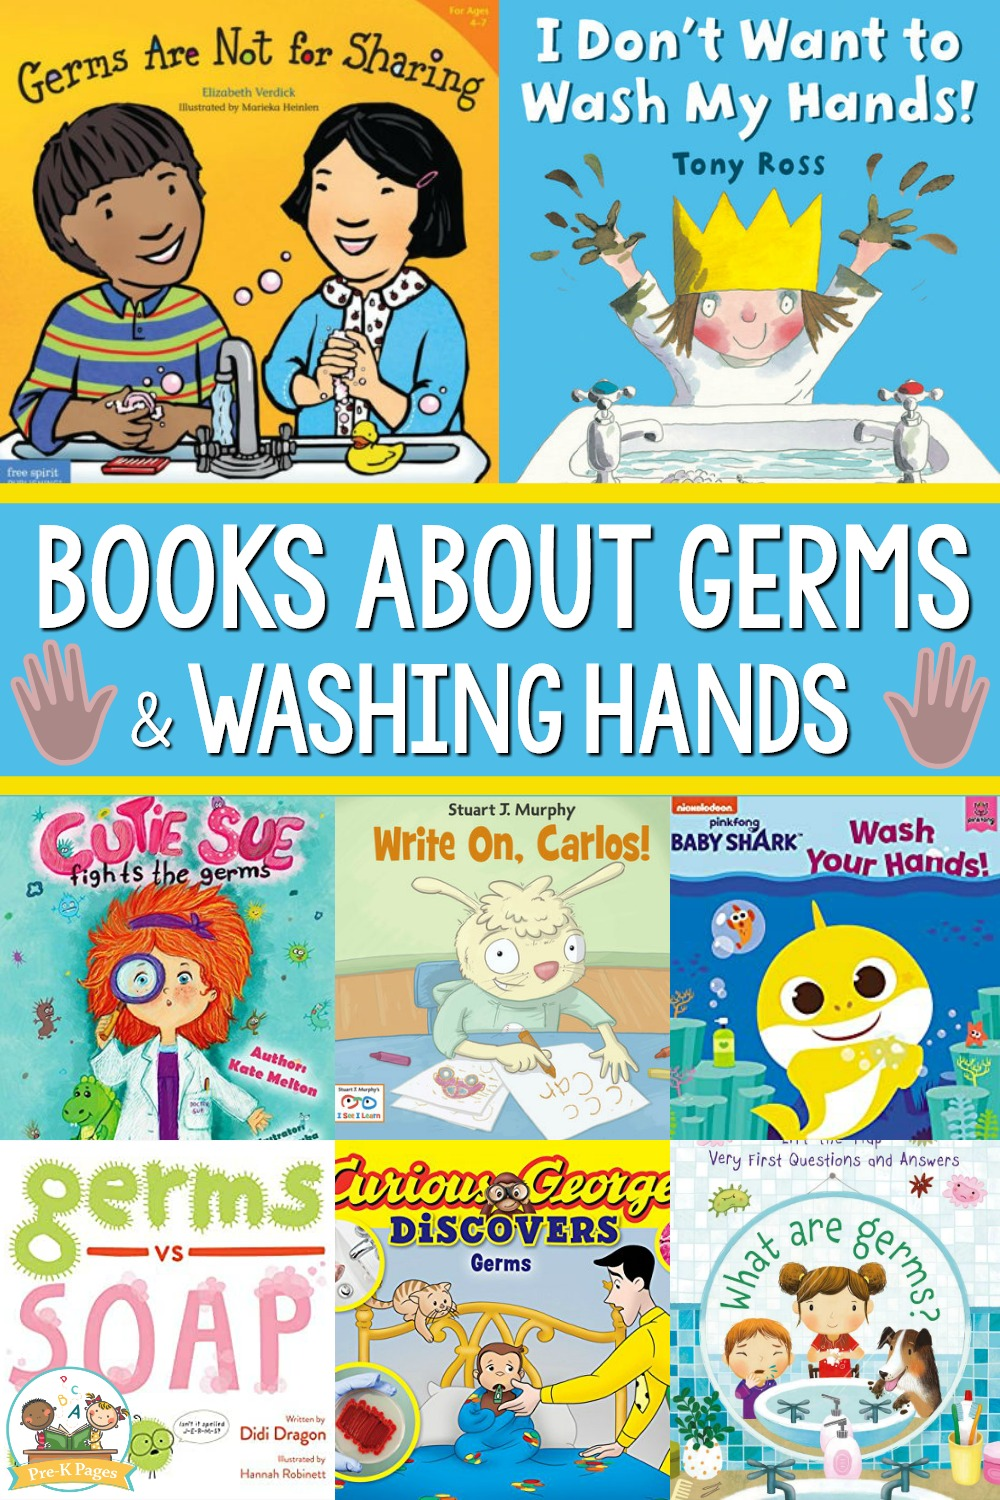 Books About Germs and Washing Hands